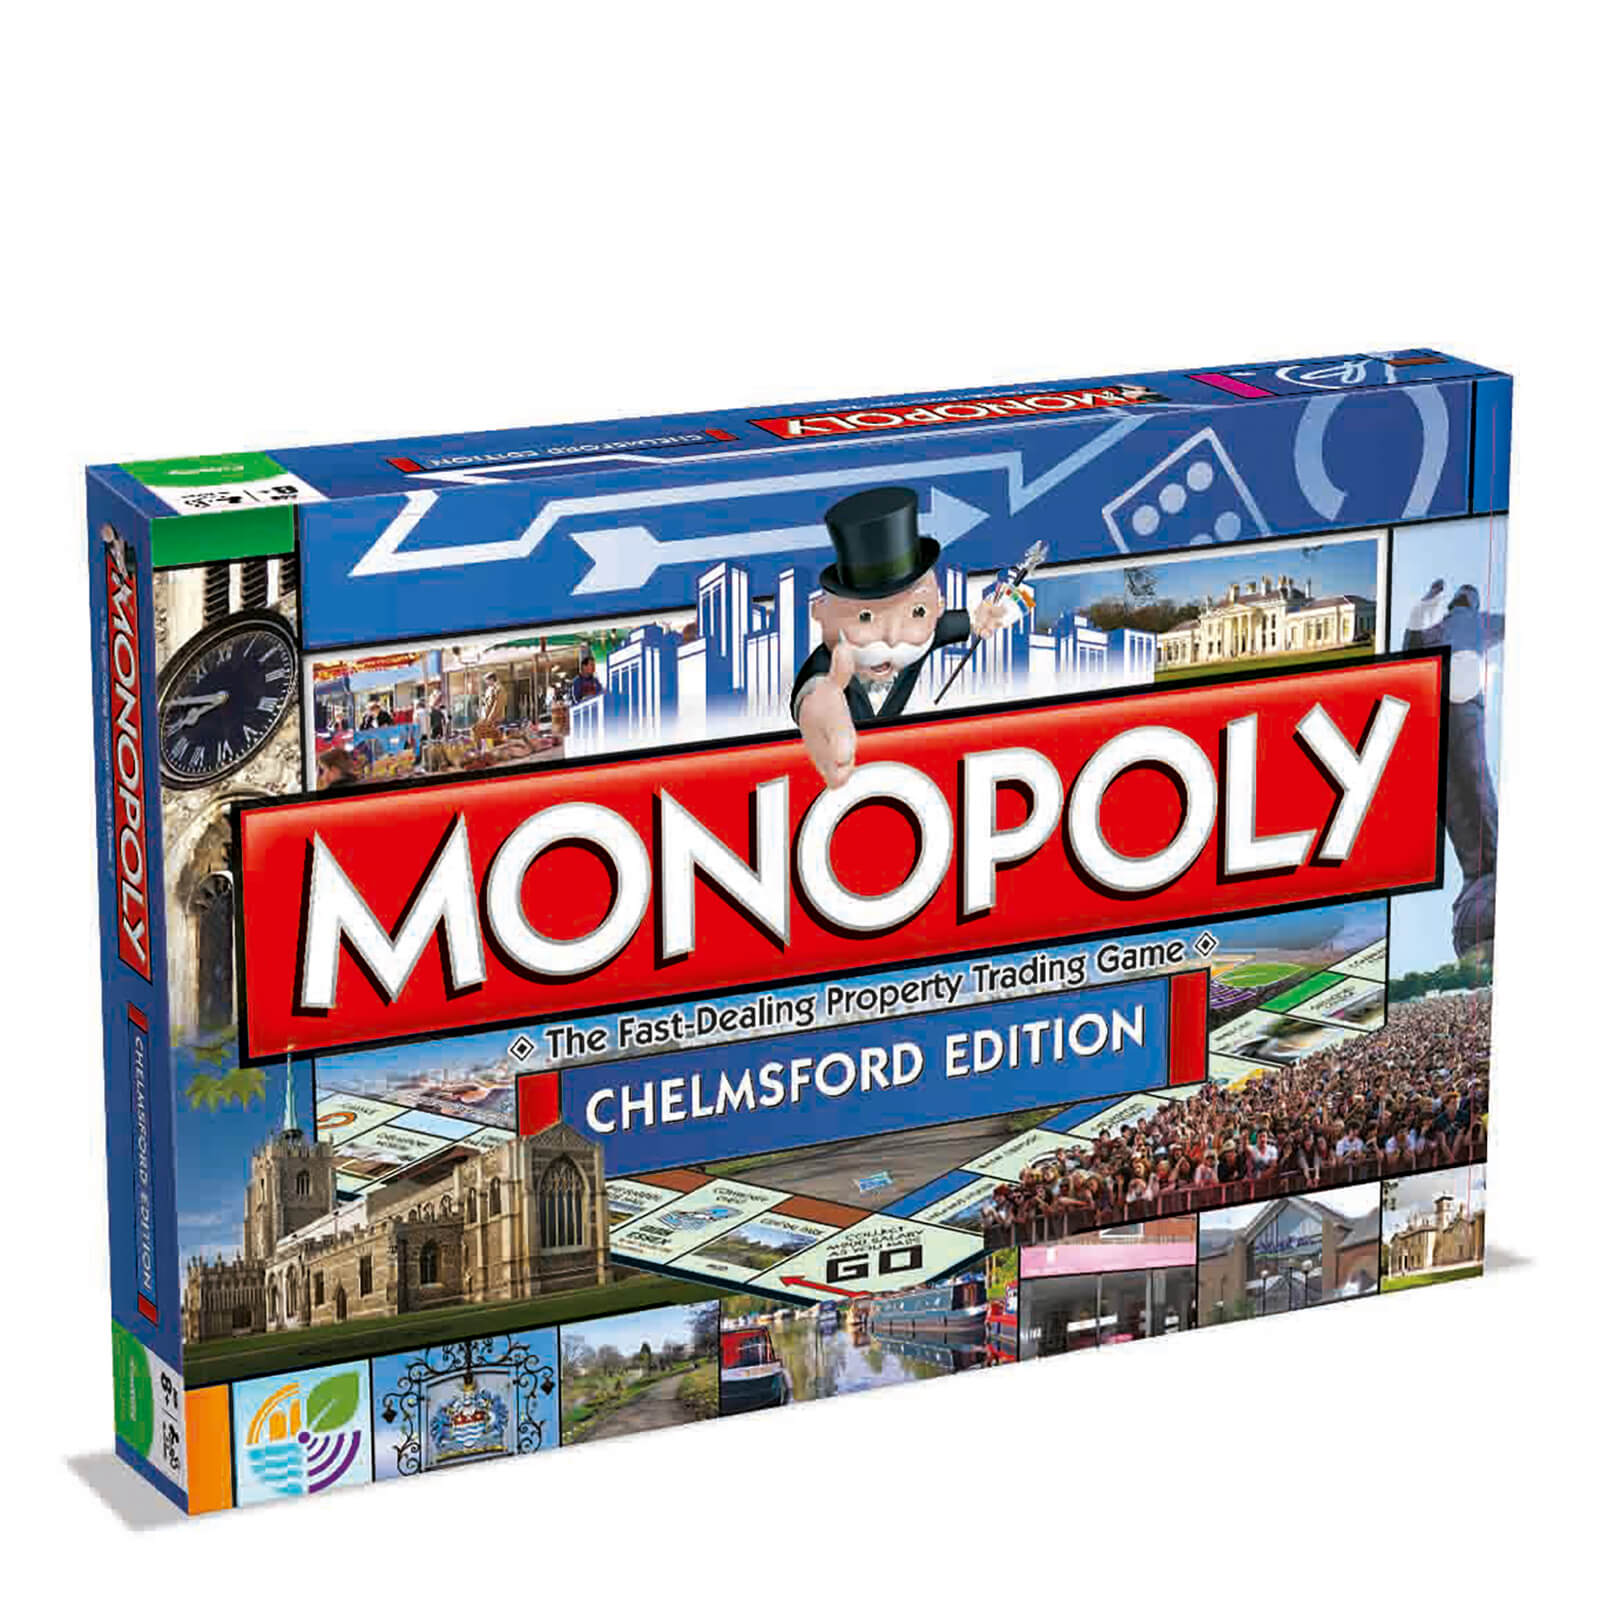 Image of Monopoly Board Game - Chelmsford Edition